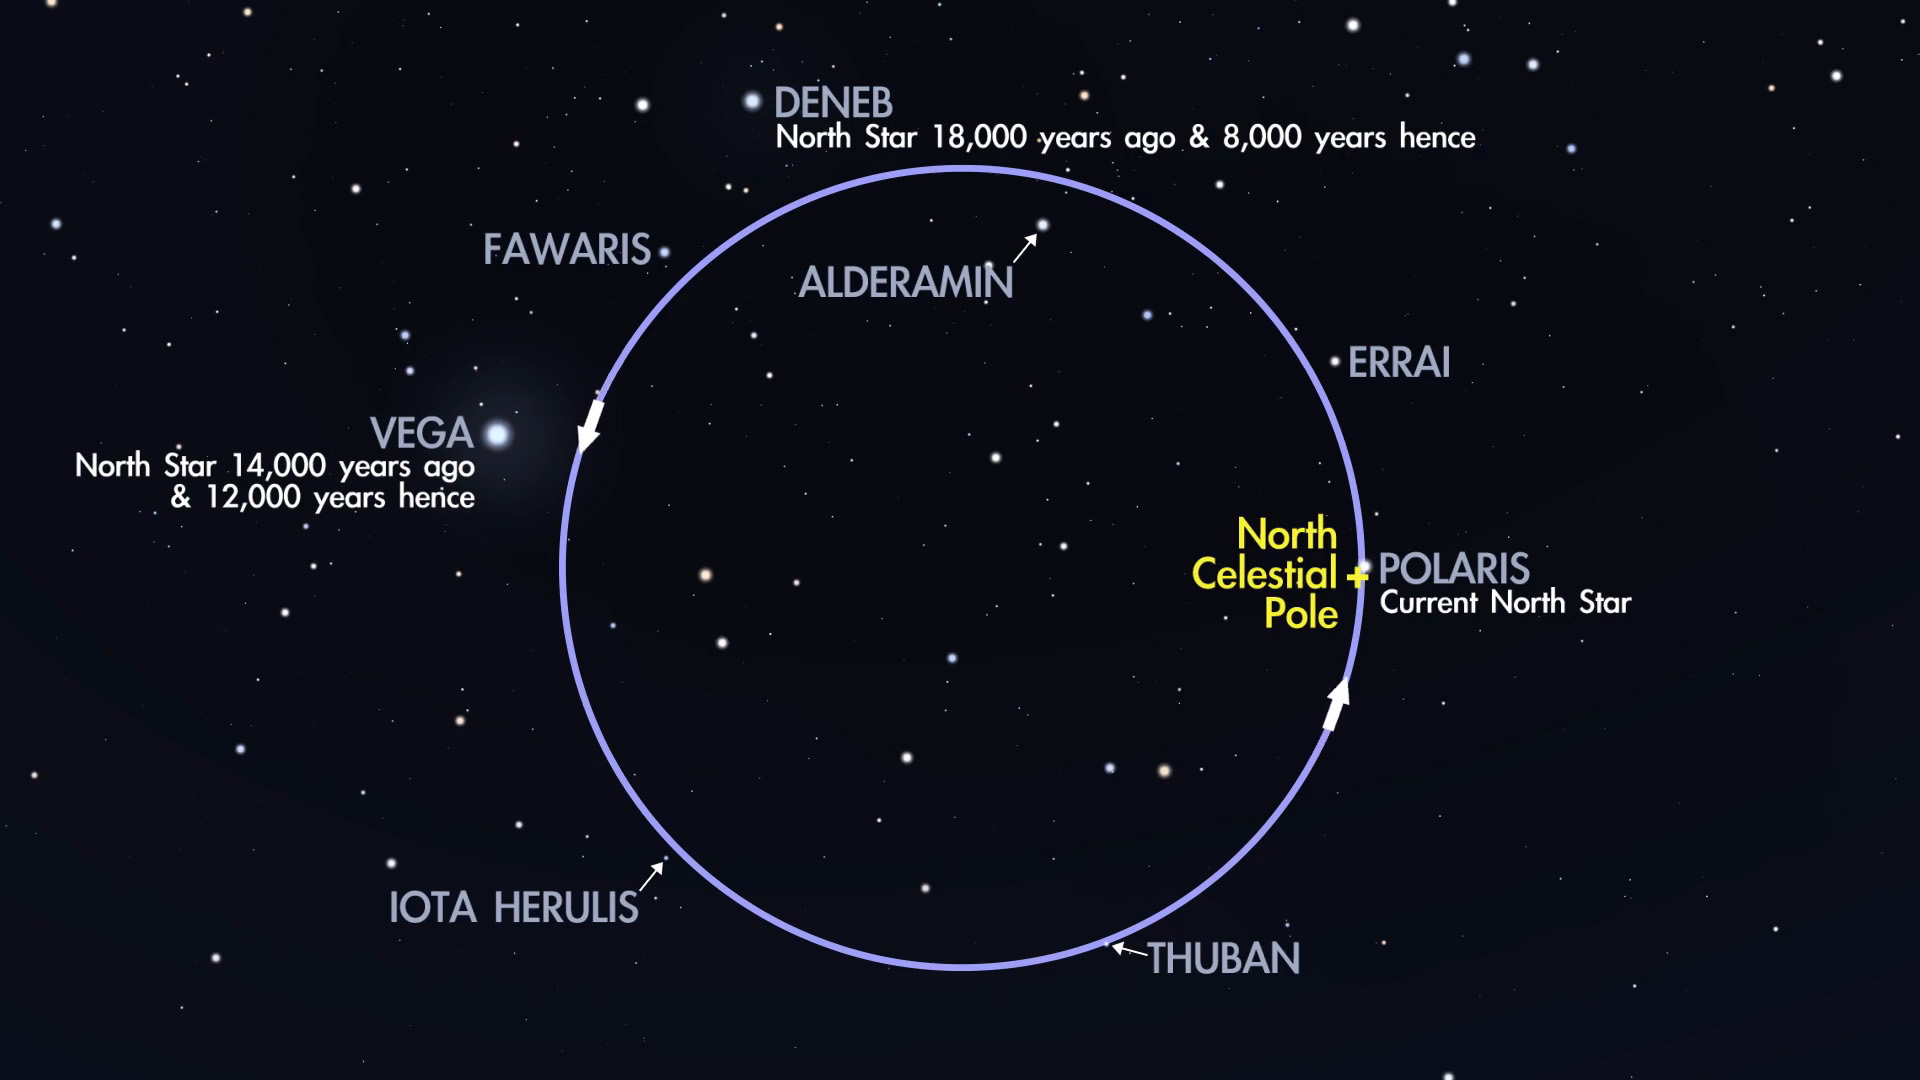 Over 26,000 years, Polaris trades the title of North Star with a group of others, including Vega and Deneb. Of these special stars, Polaris is the bright star that coincides closest with the Celestial North Pole. Credit: NASA/JPL-Caltech